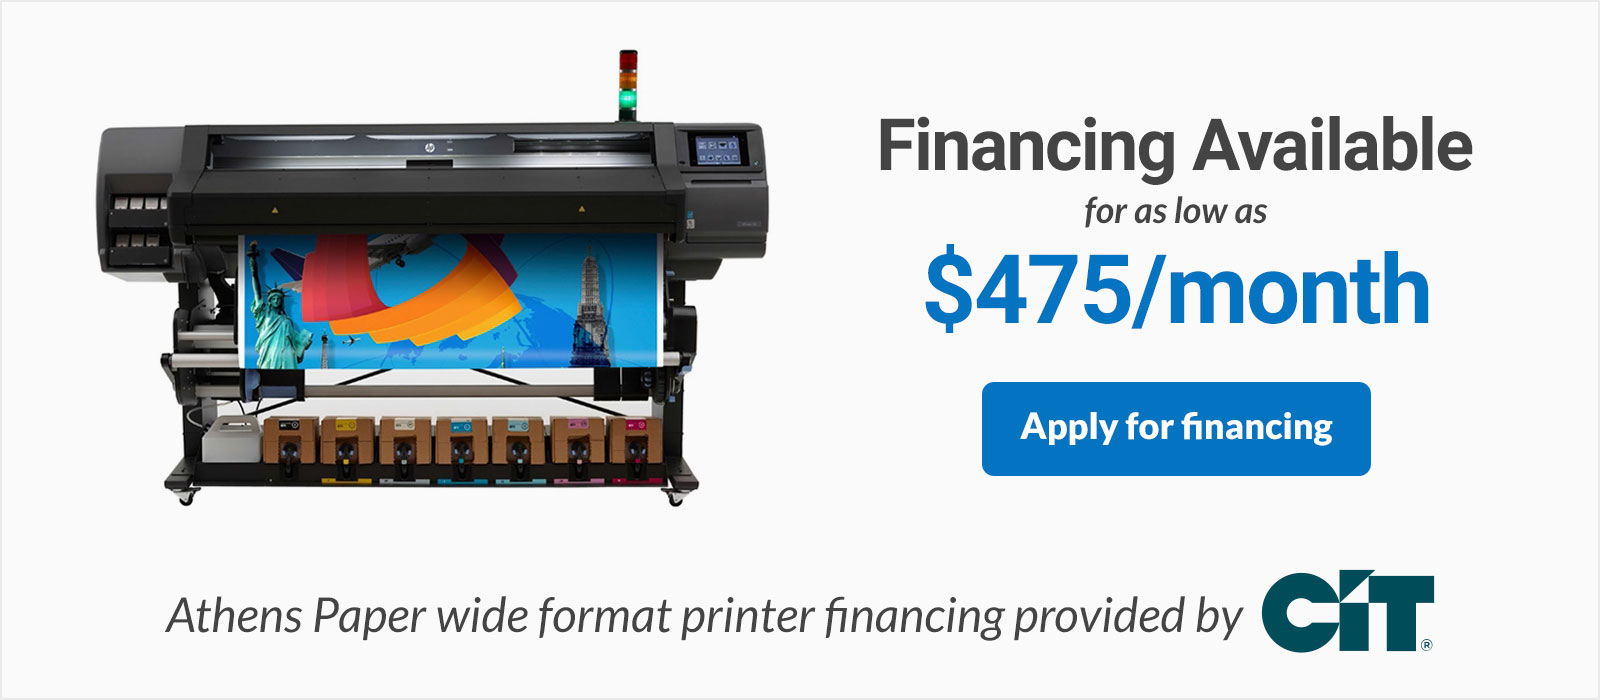 hp latex 570 printer 64 inch financing on sale discounted low monthly payments